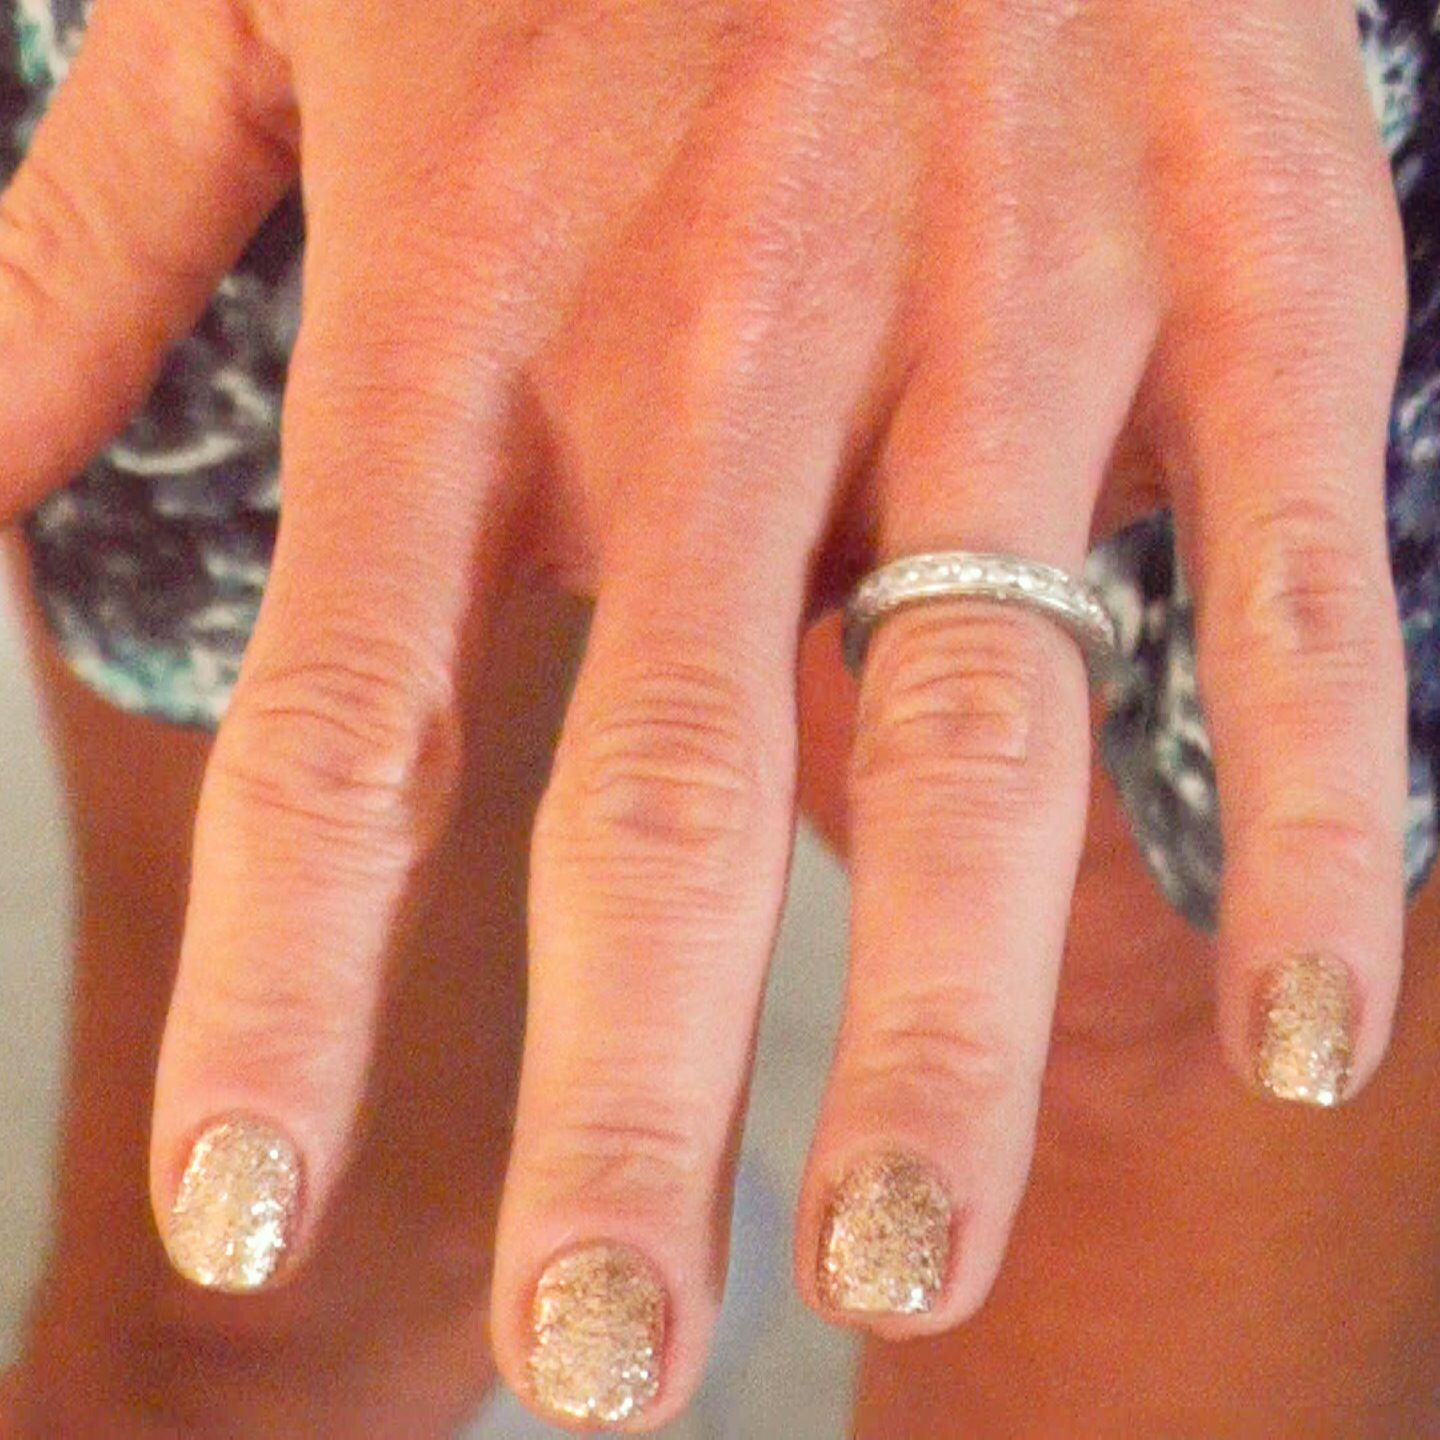 Kelly\'s new manicure from @PaintBoxNails! #KellyandMichael #Manicure ...